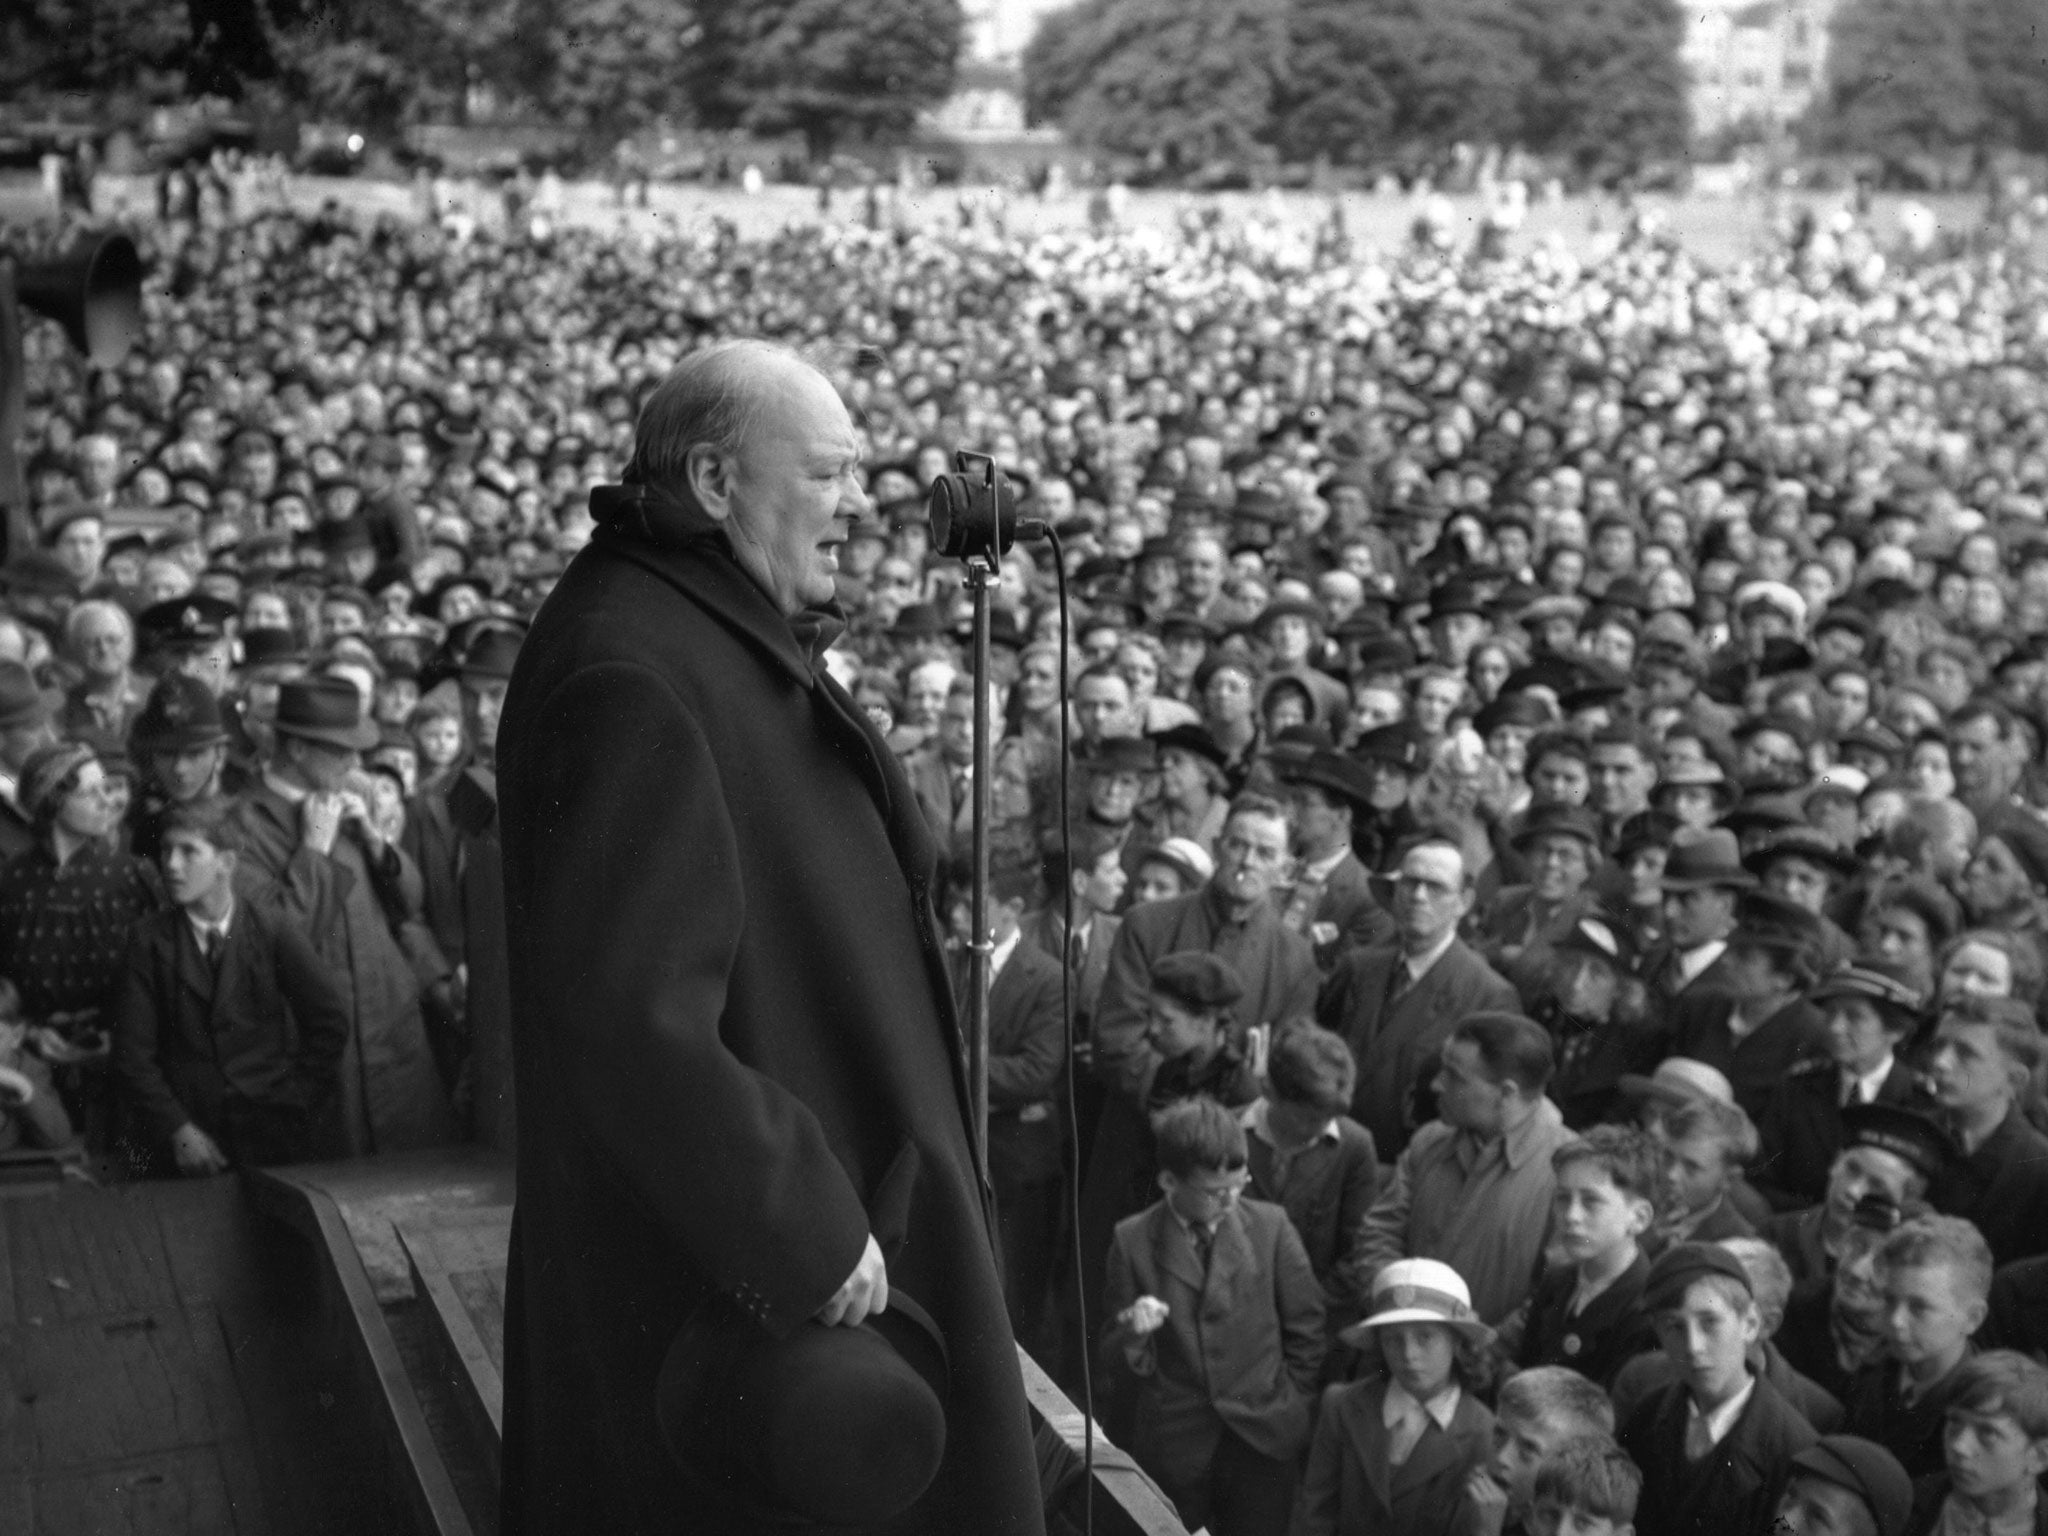 winston churchill accusations of anti semitism economic winston churchill accusations of anti semitism economic inexperience and the blunt refusal that led to the deaths of millions the